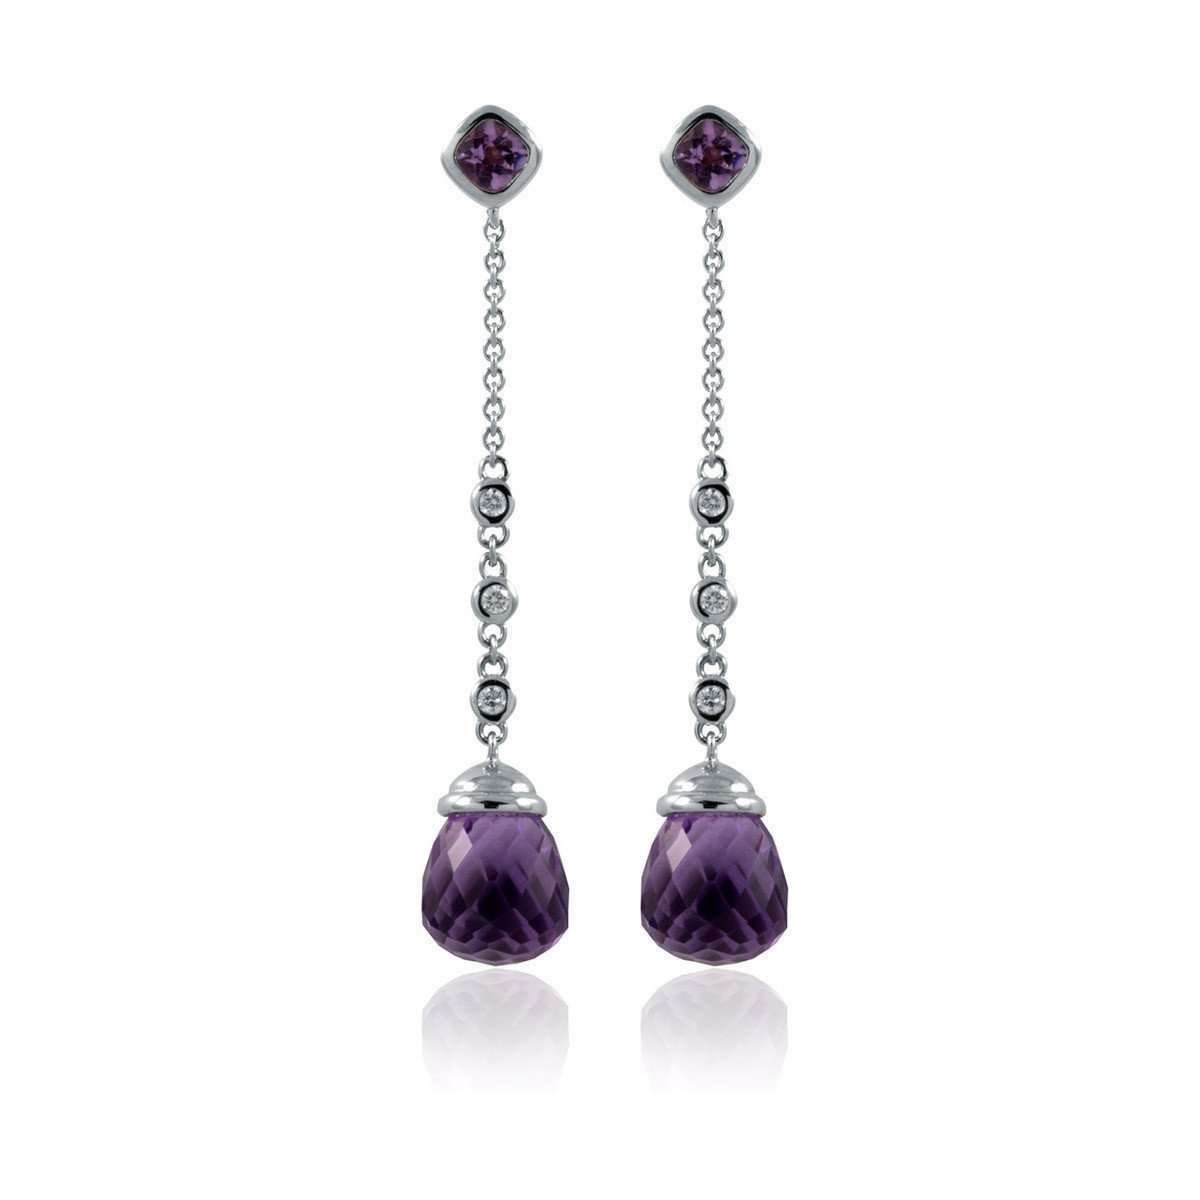 Ella White Gold Amethyst Earrings-Estenza-JewelStreet US